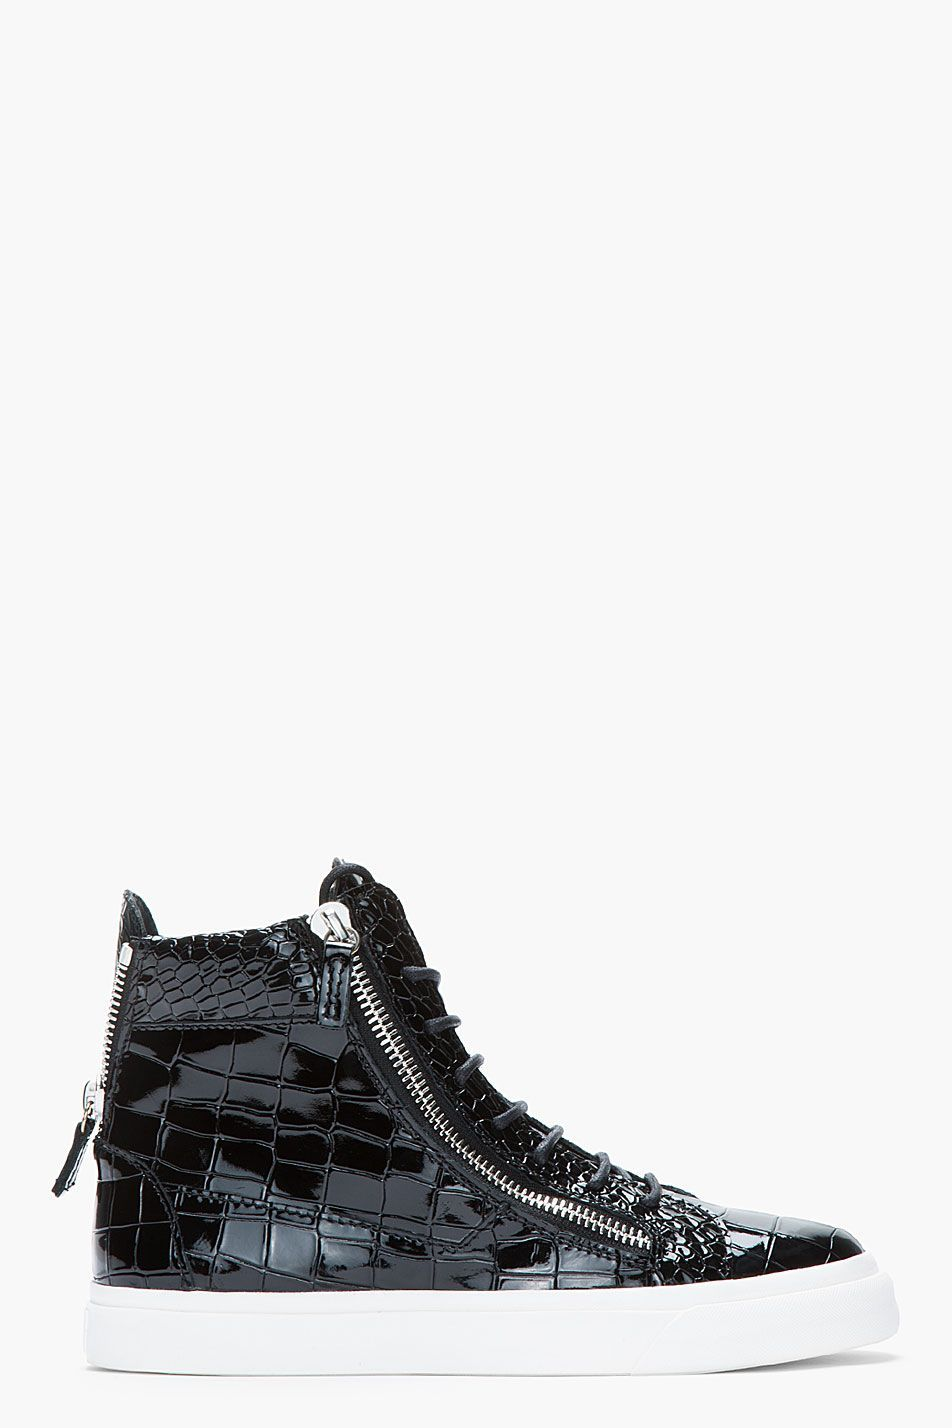 new styles be04a 1d431 Giuseppe Zanotti Black Patent Leather Croc-embossed London Sneakers for men    SSENSE